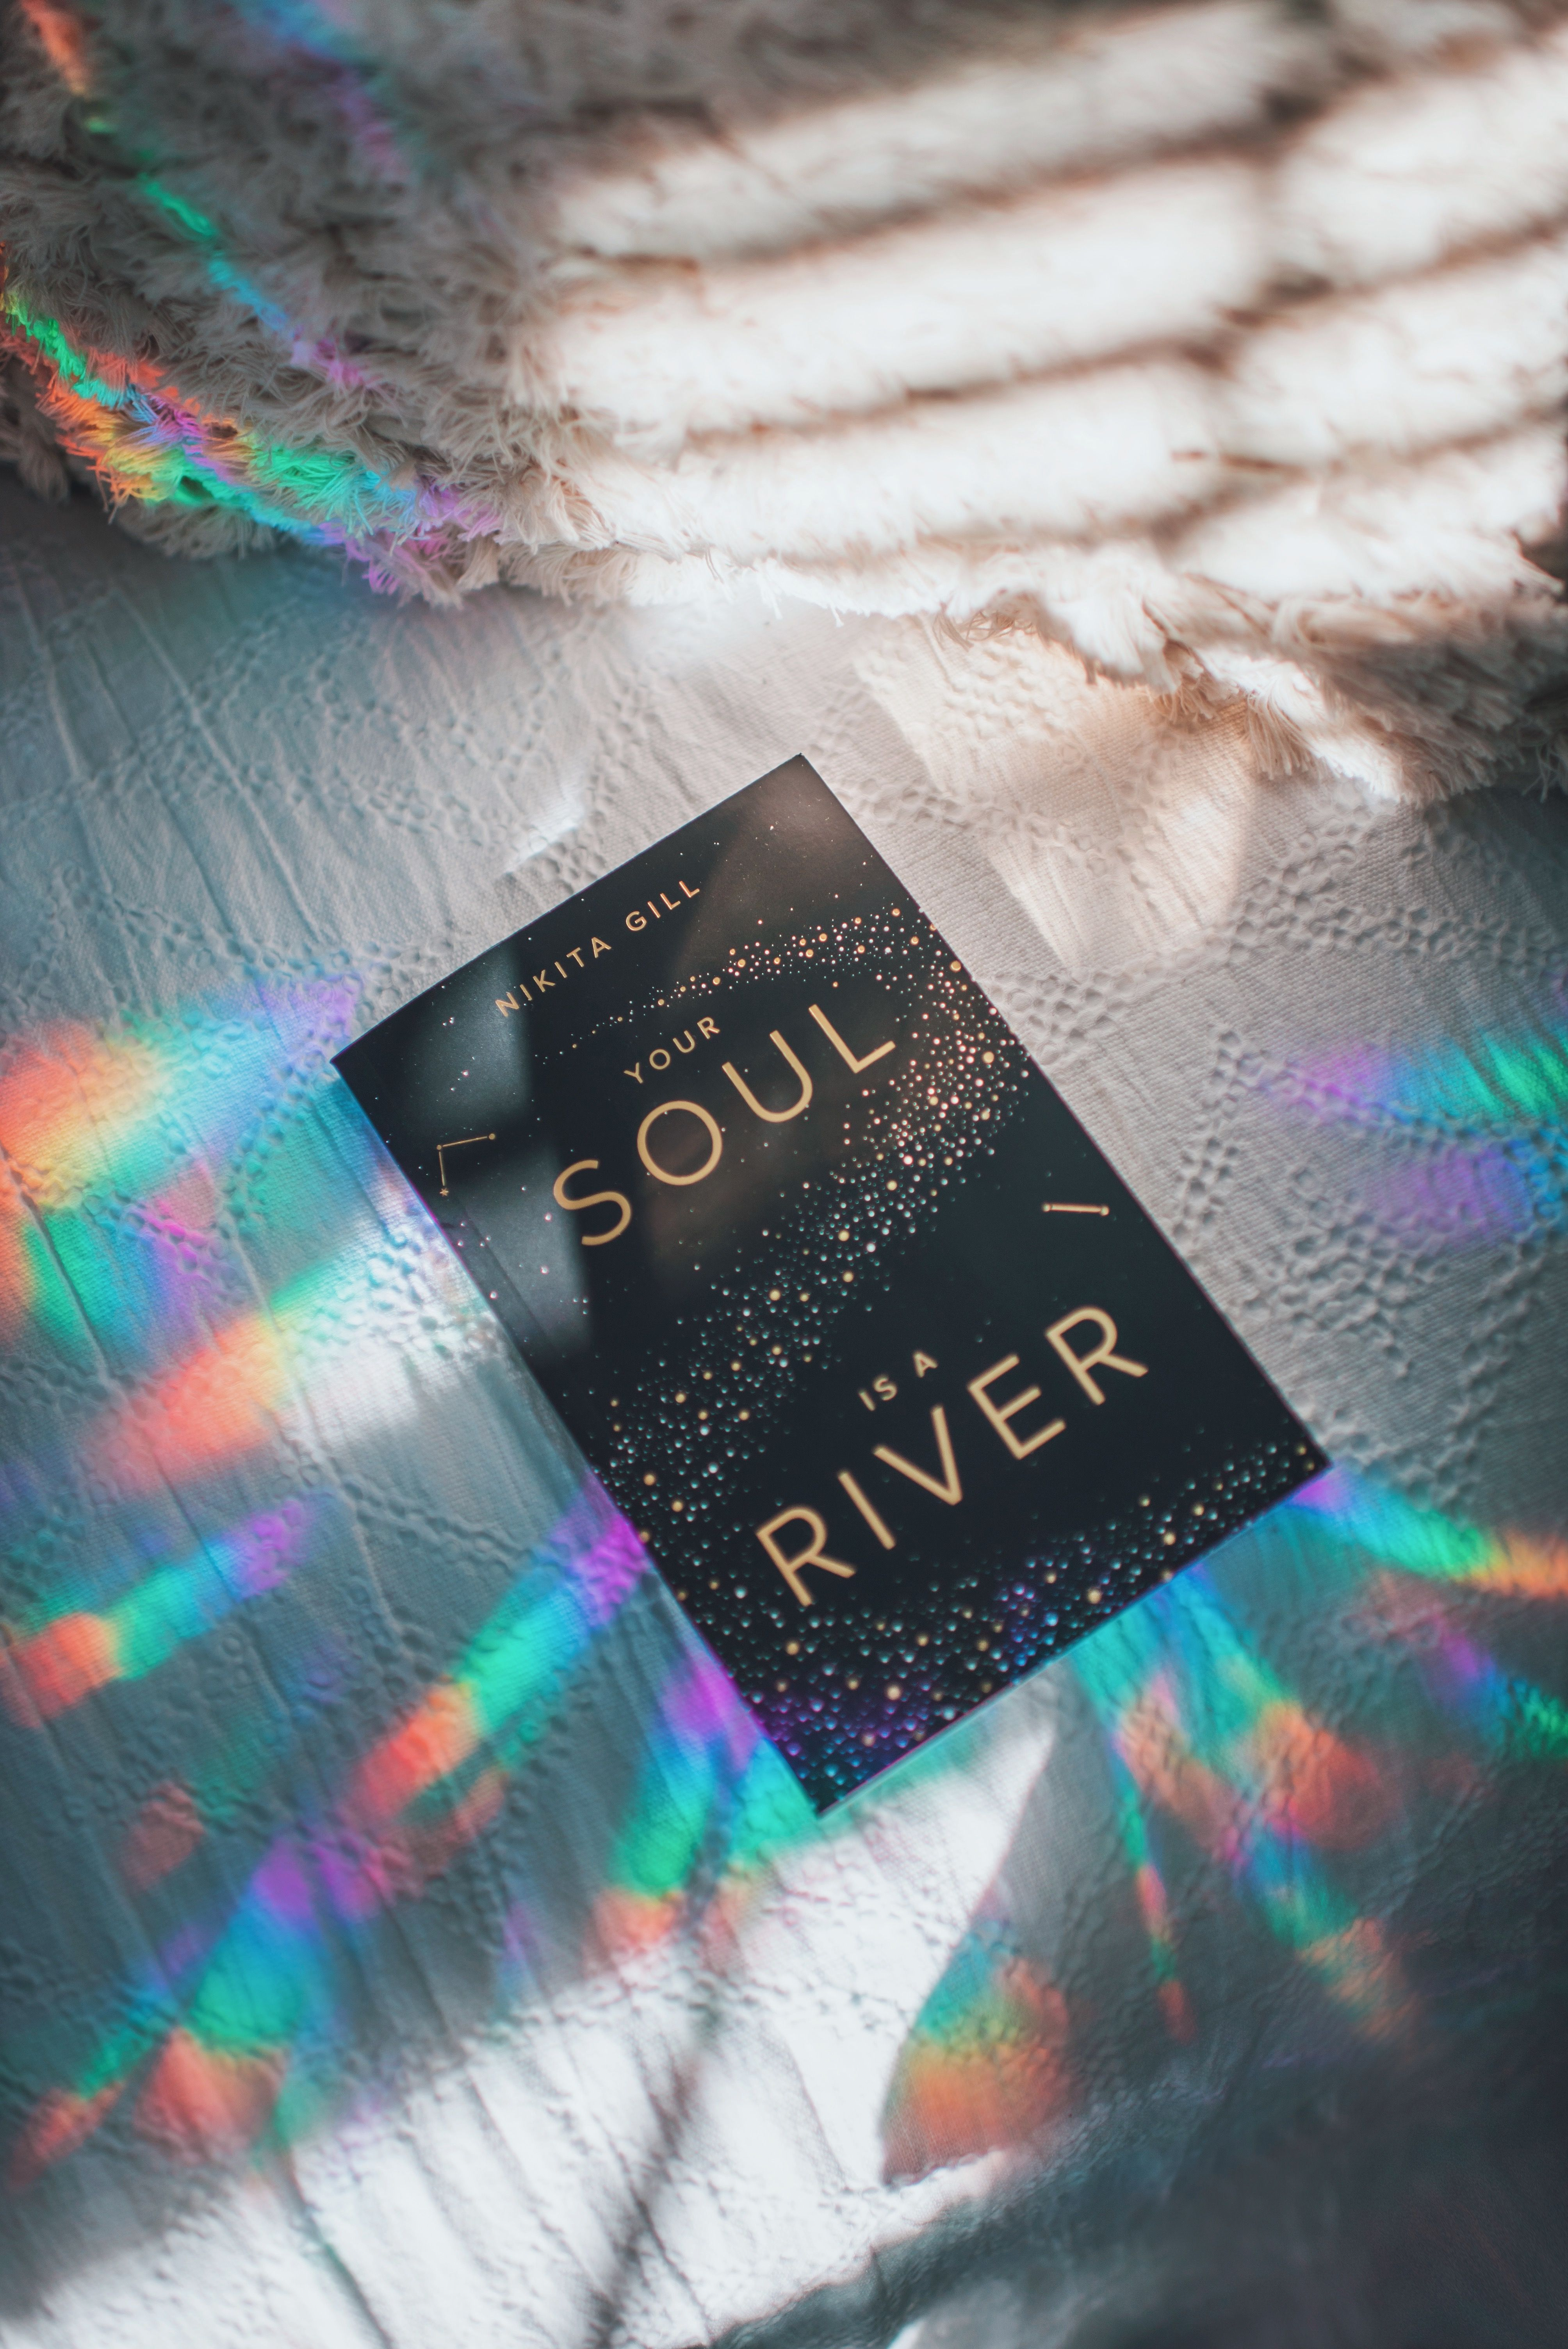 Your Soul Is A River In 2020 Book Photography Book Club Books Psychology Books